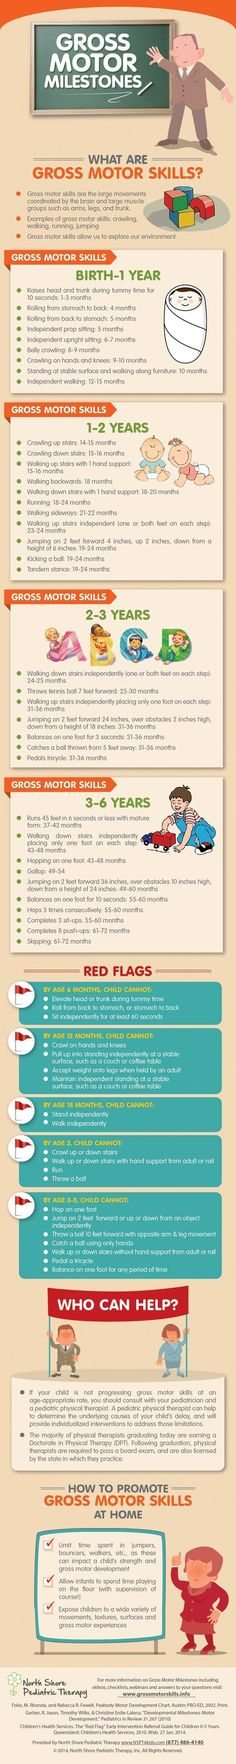 Understand gross motor skills and your child's development.